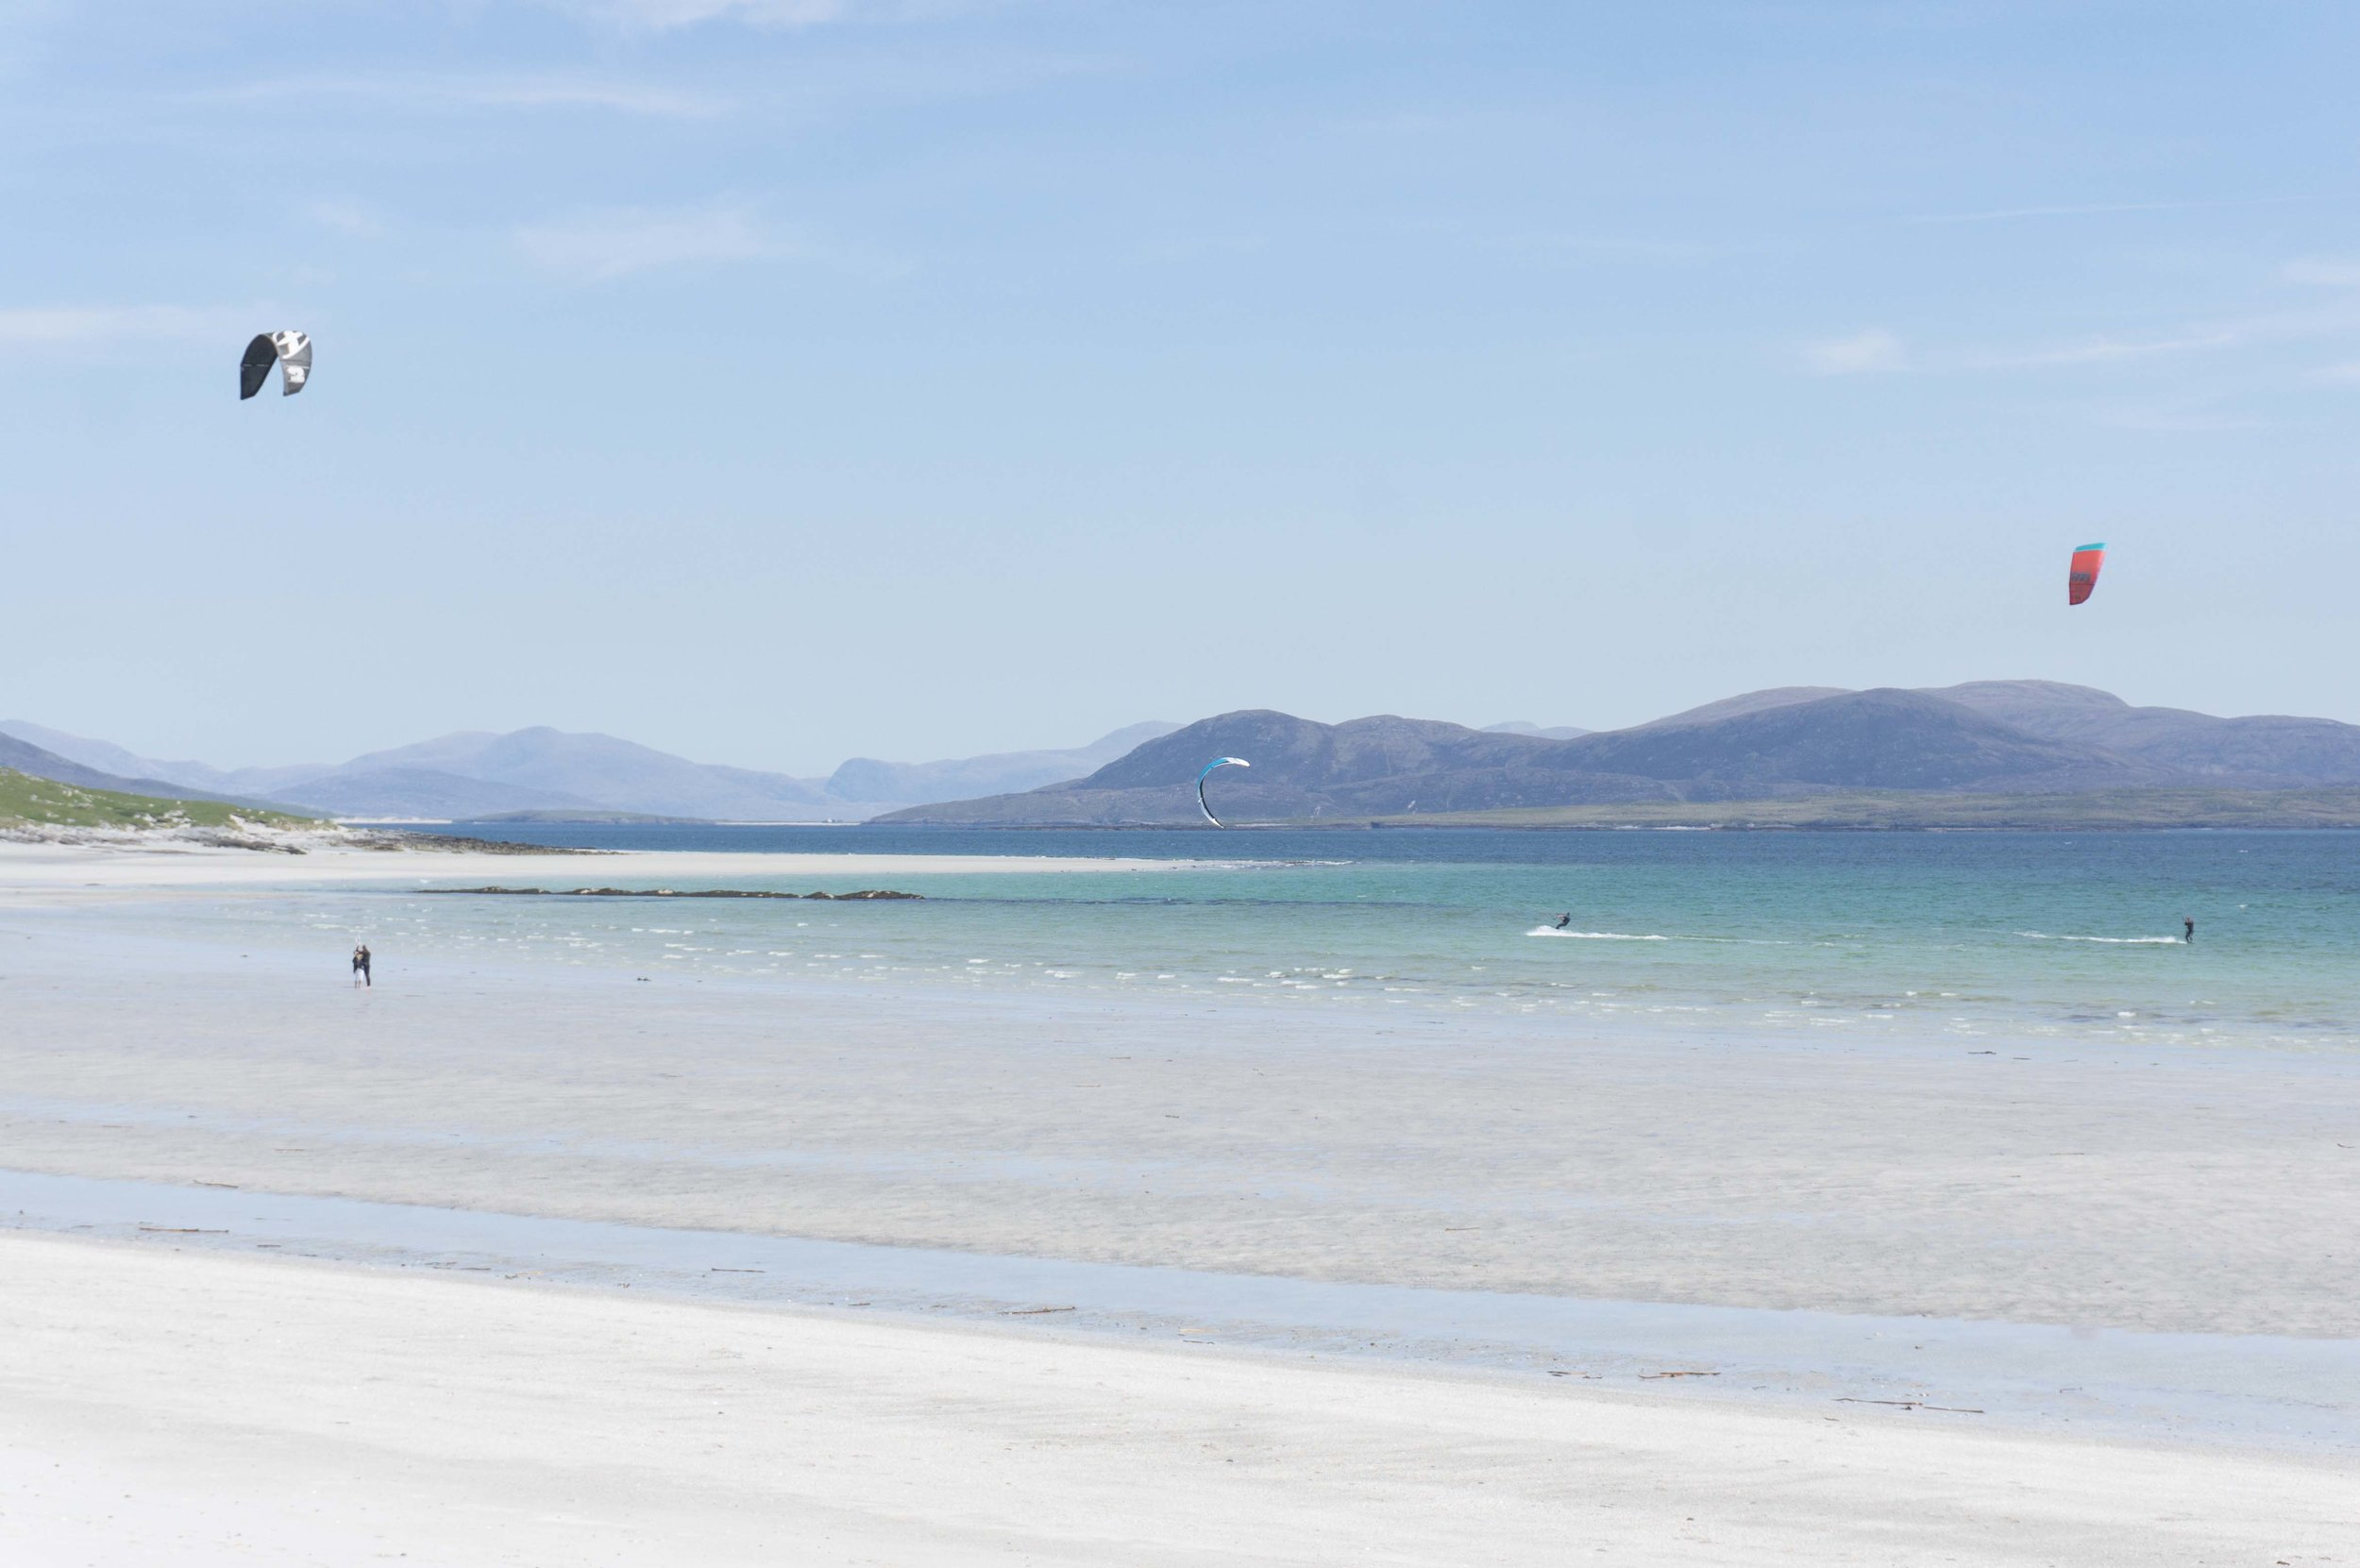 Walking, Cycling and Water sports - Hike the moorland hills of North Uist or amble the empty, white beaches along our coast. Cycle with your family on quiet, single track island roads. Enjoy the ocean air and clear turquoise water.